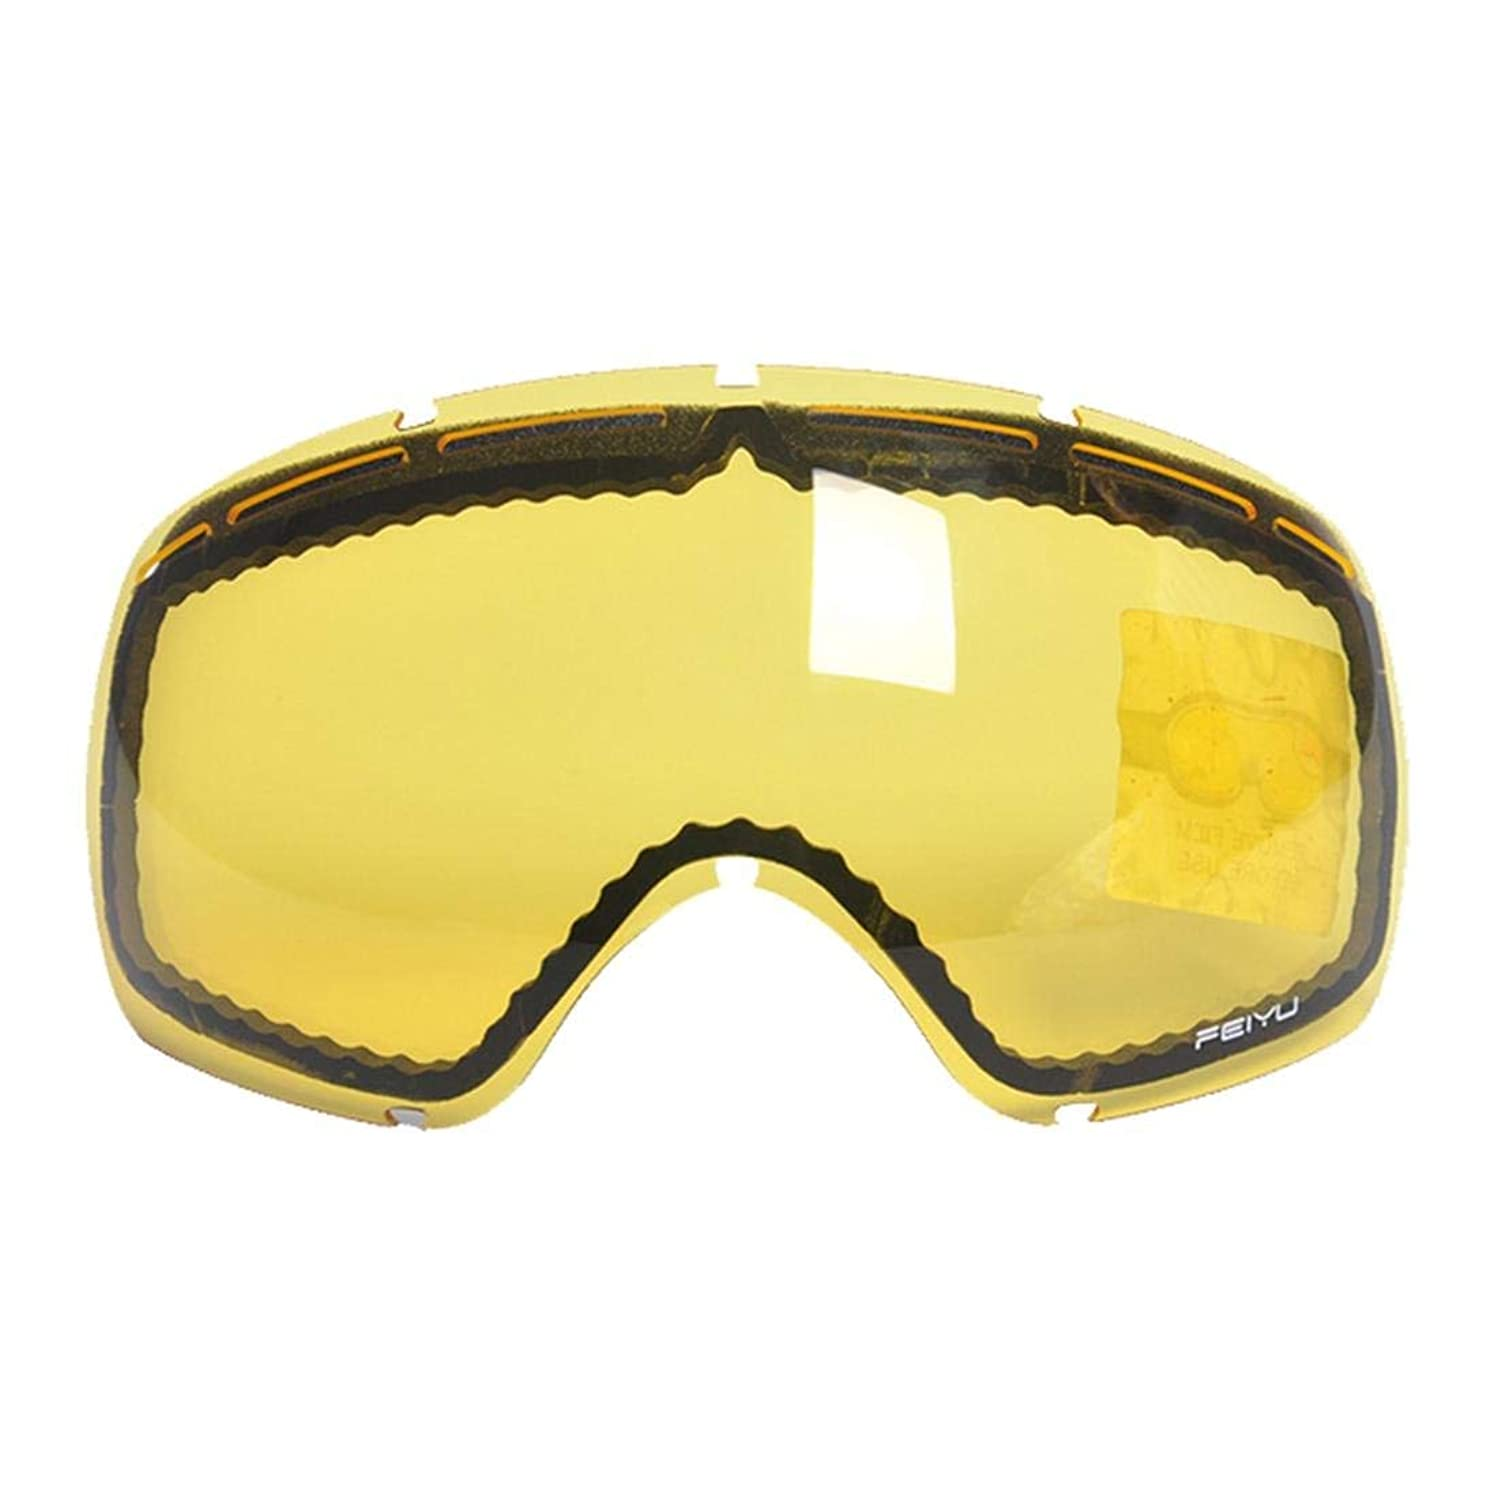 Exquisite Goggles Skiing Glasses Matching Glasses for Large Spherical Double Anti-Fog Glasses can be Card Myopia Men and Women Models (Color : Night/Yellow zengguang Tablets)